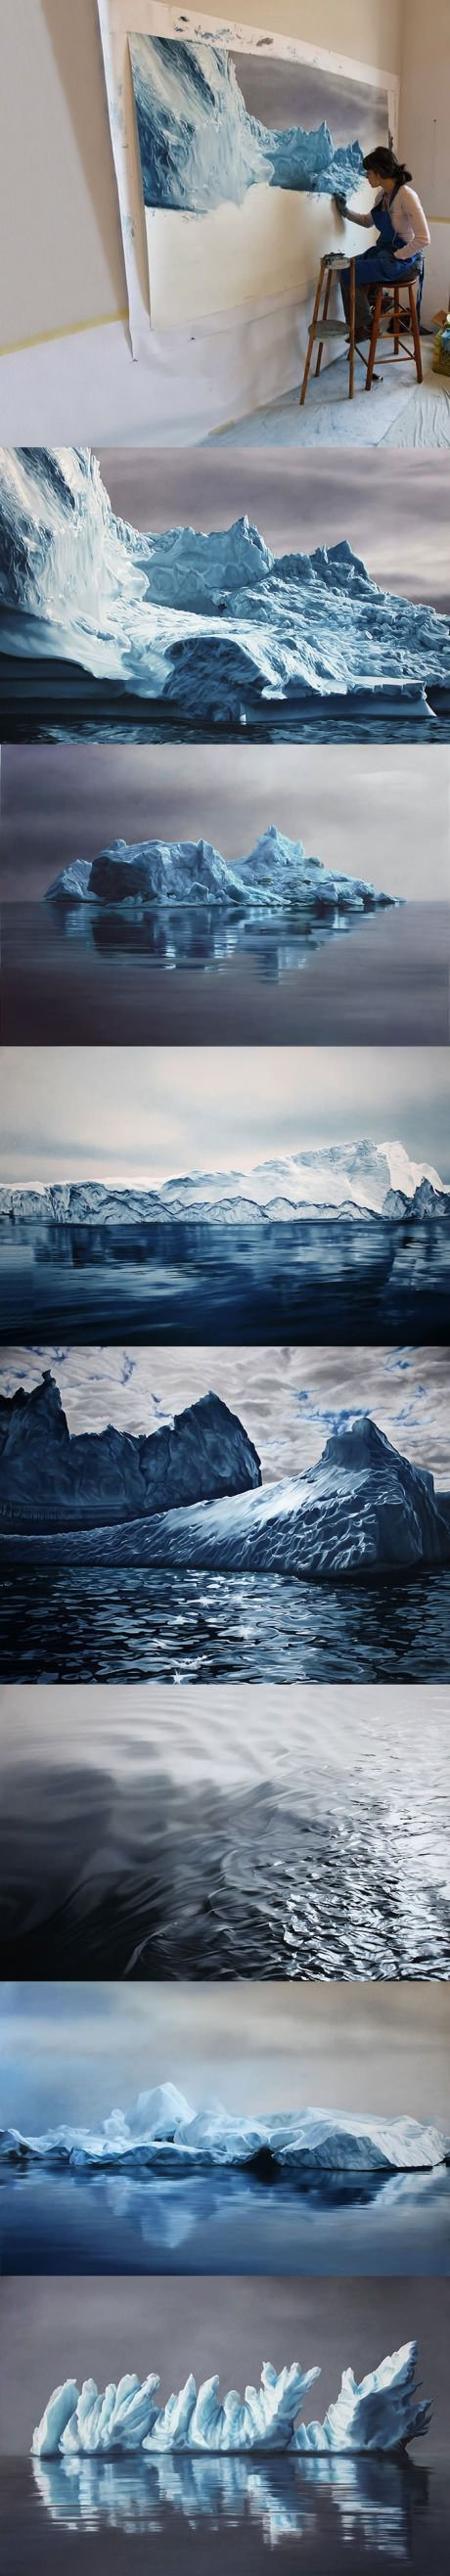 Epic icebergs drawings that look real